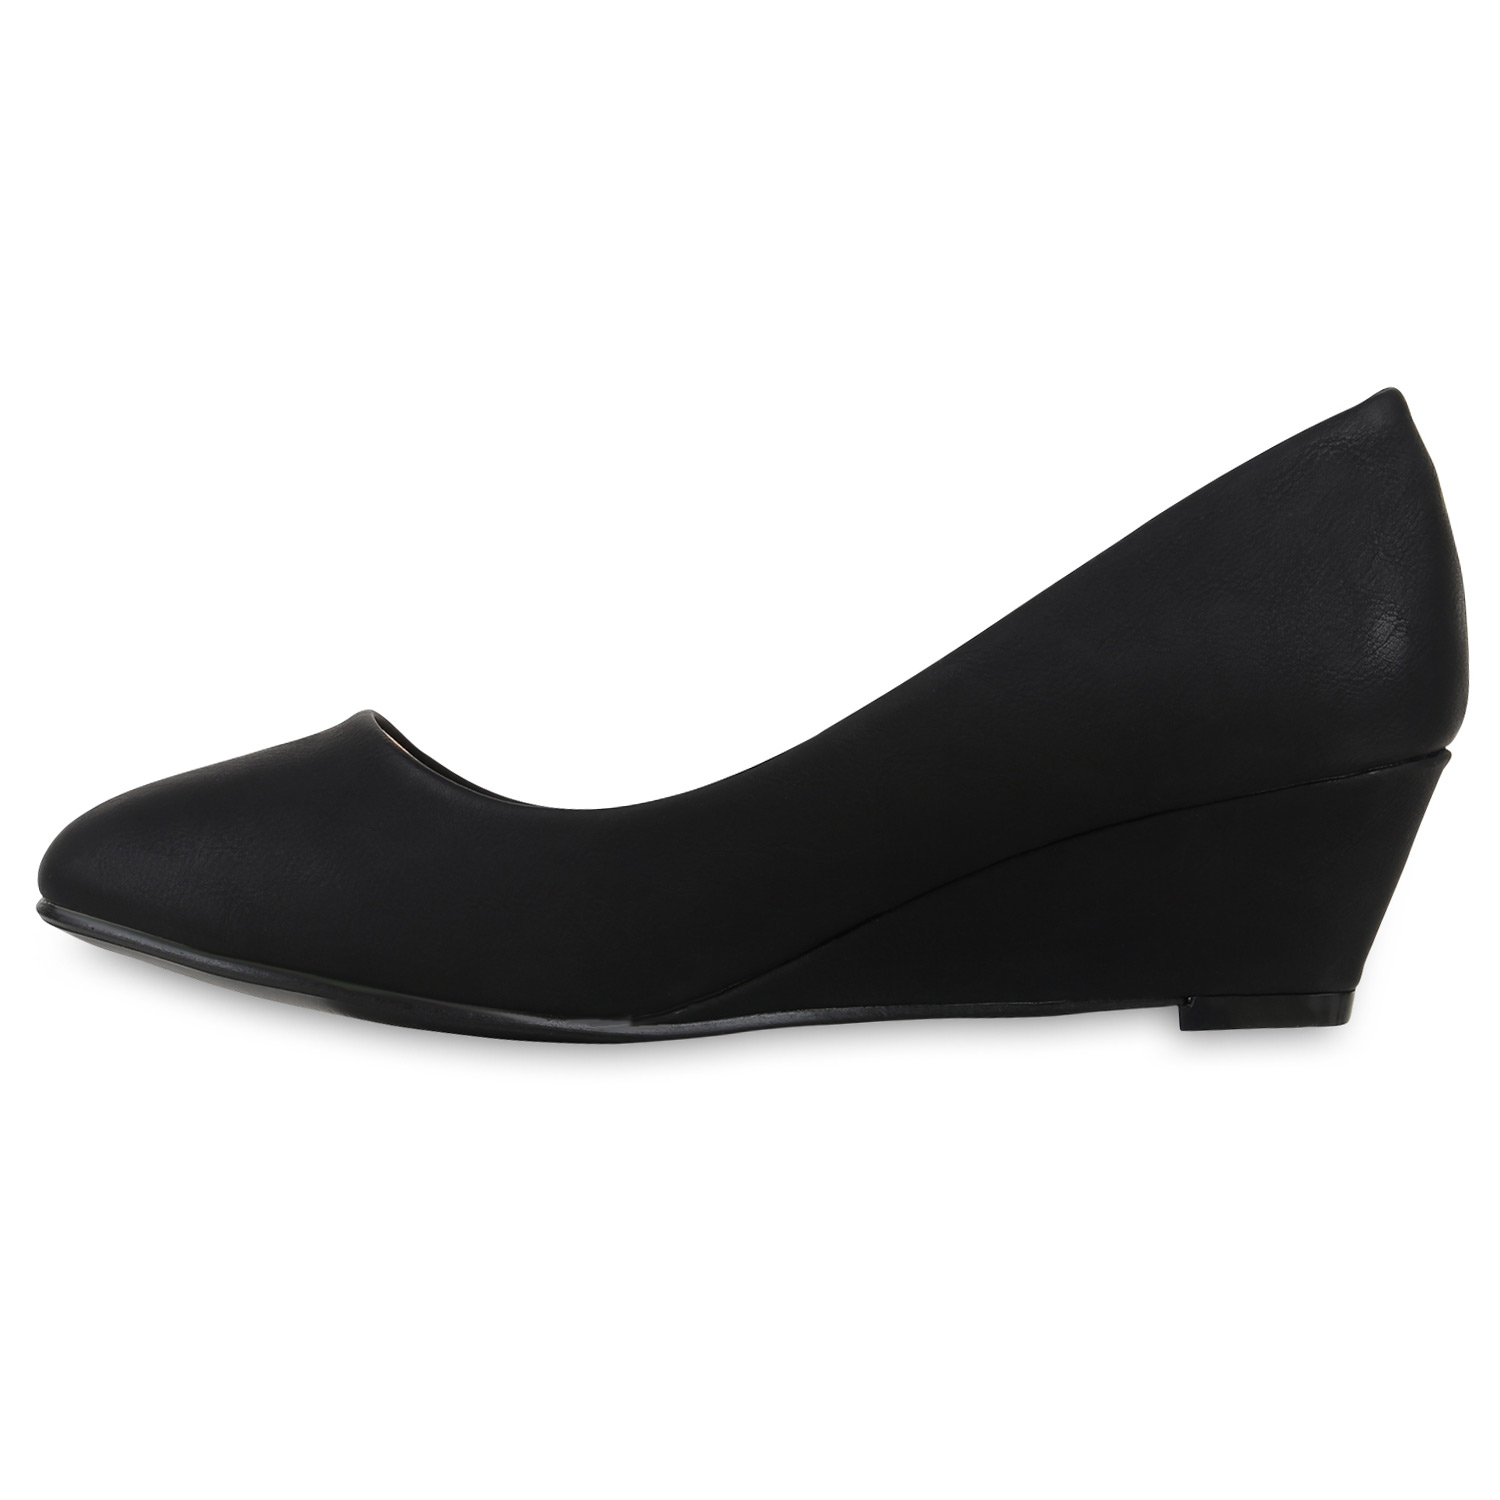 Elegante Damen Pumps Keilabsatz Wedges Business Schuhe 815064 Top